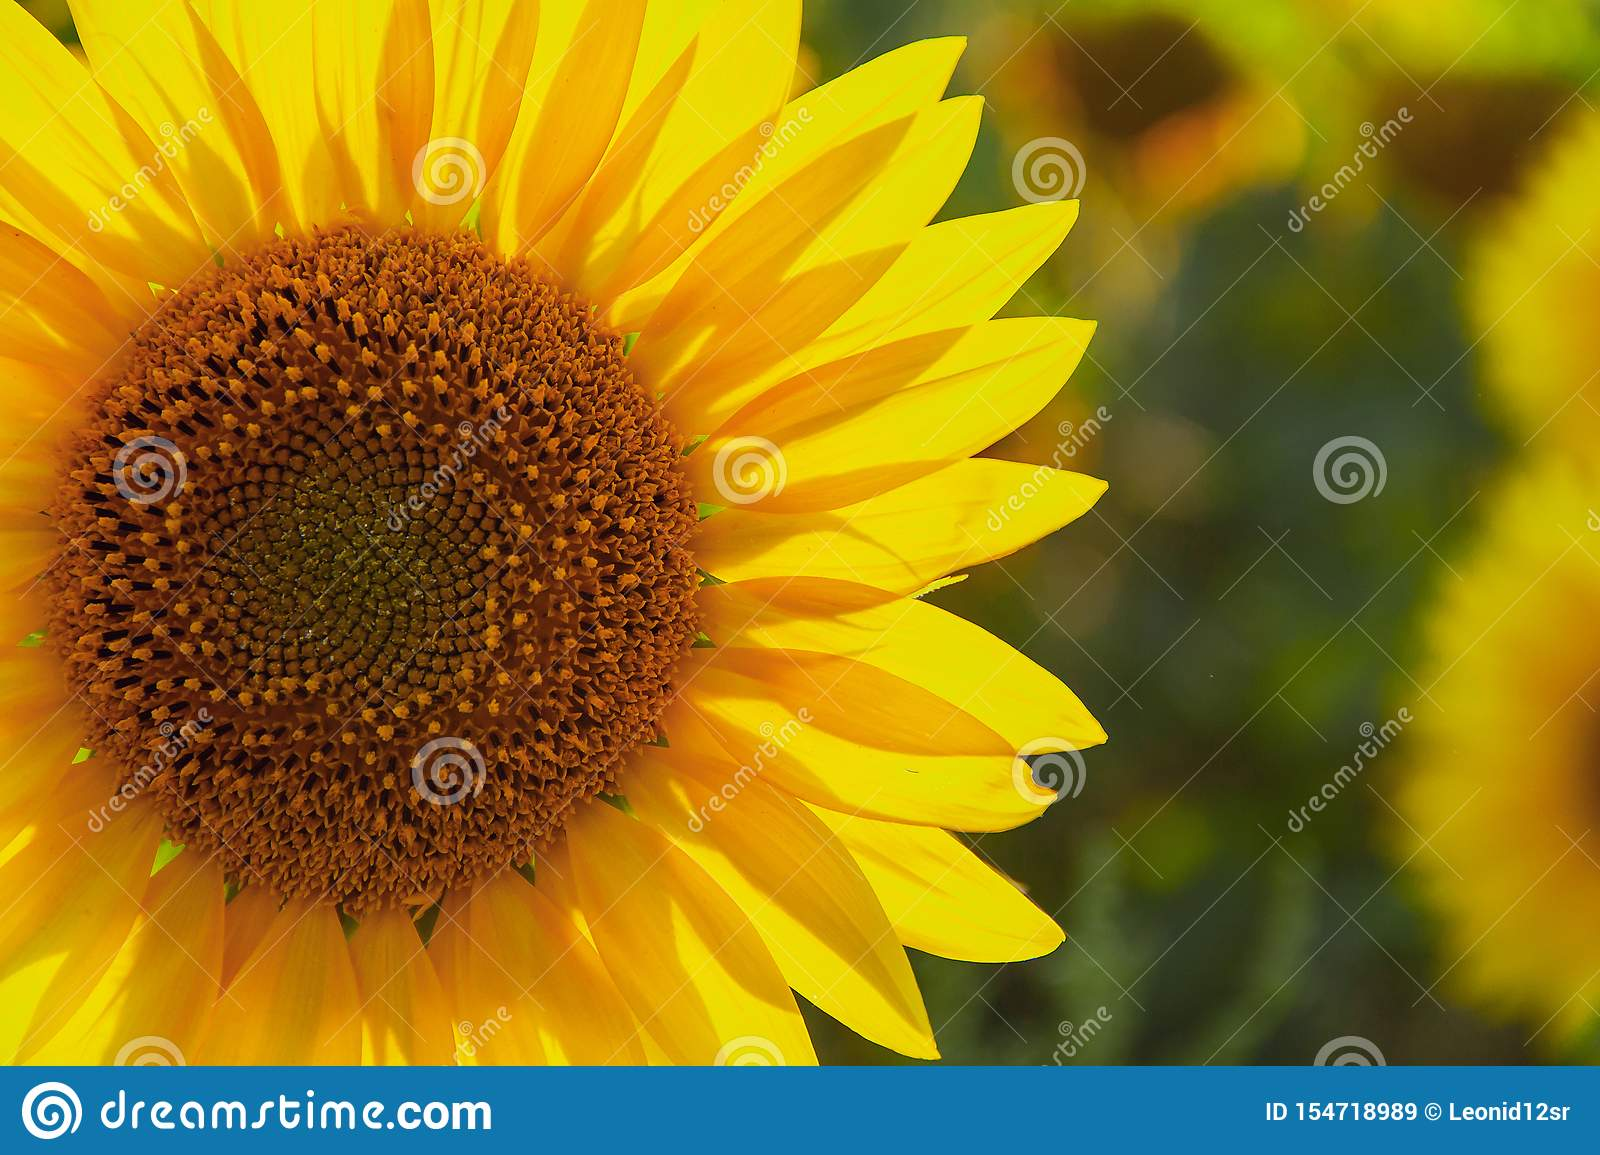 Sunflower natural background. Sunflower blooming. Agriculture field